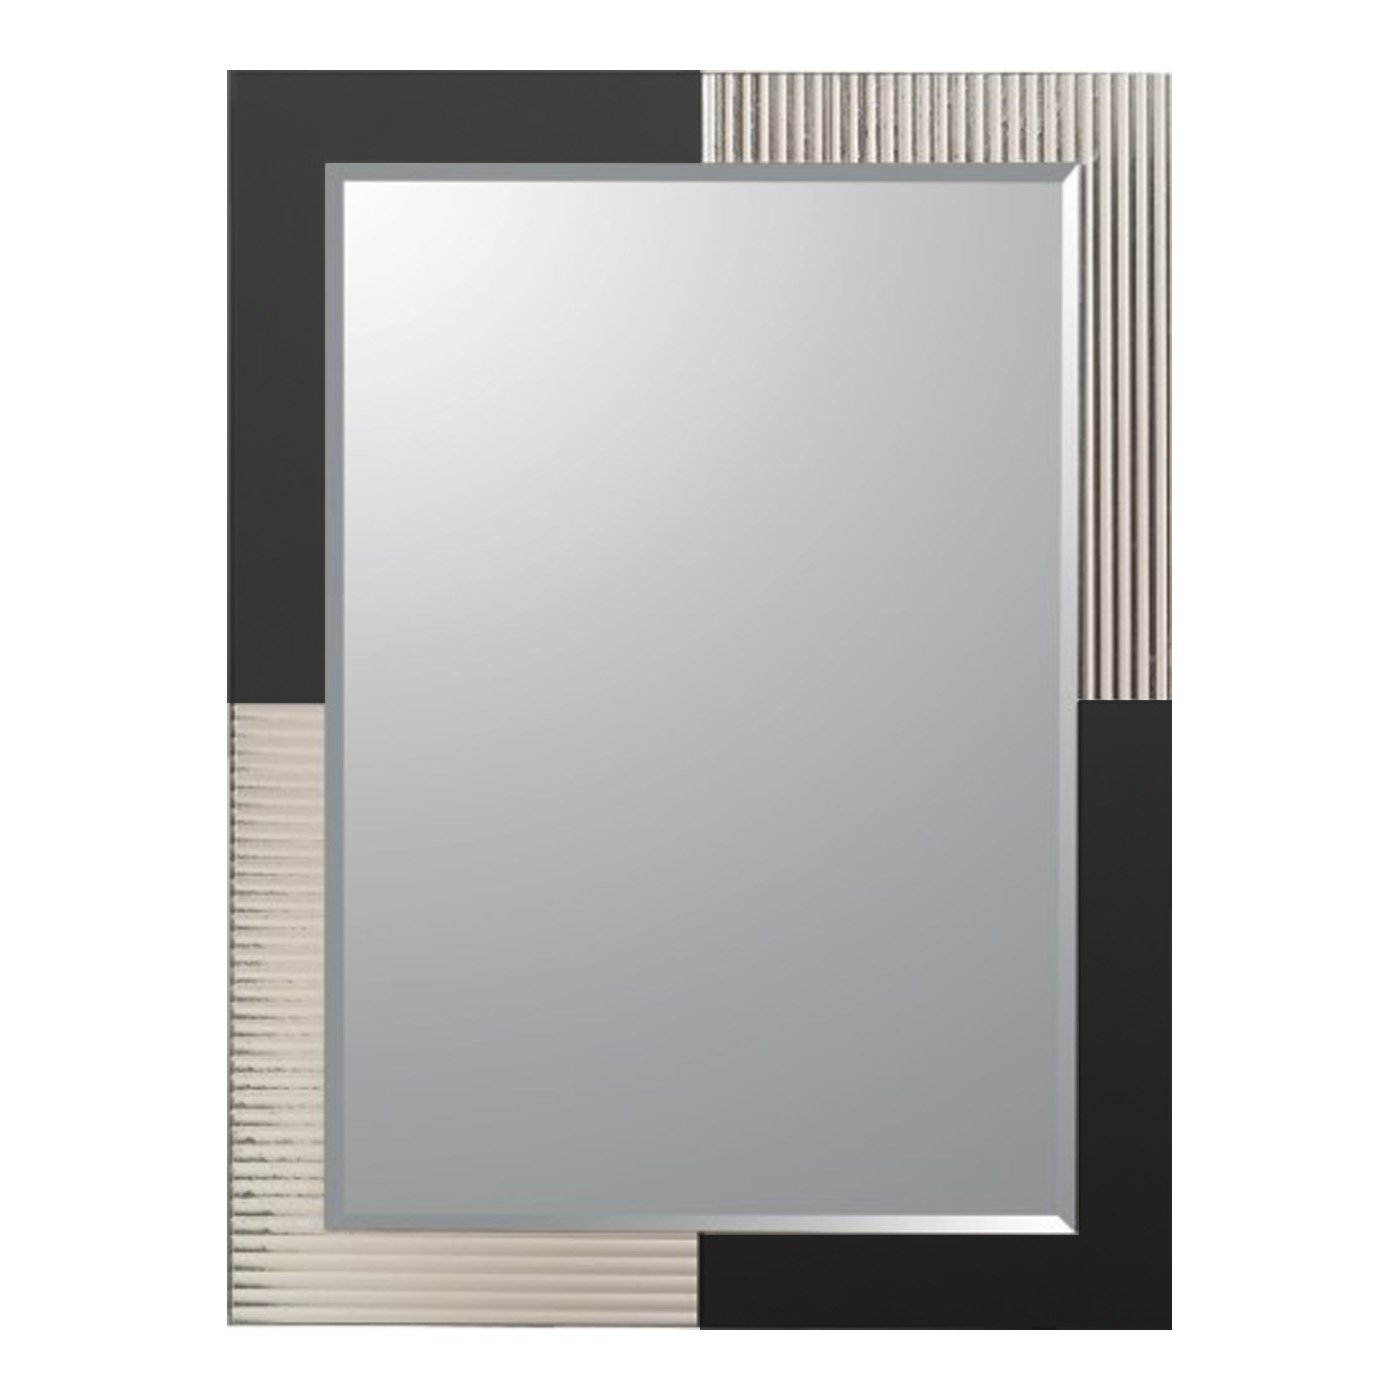 Décor Wonderland Jasmine Modern Bathroom Mirror 23.6W x 31.5H in. by Decor Wonderland of US